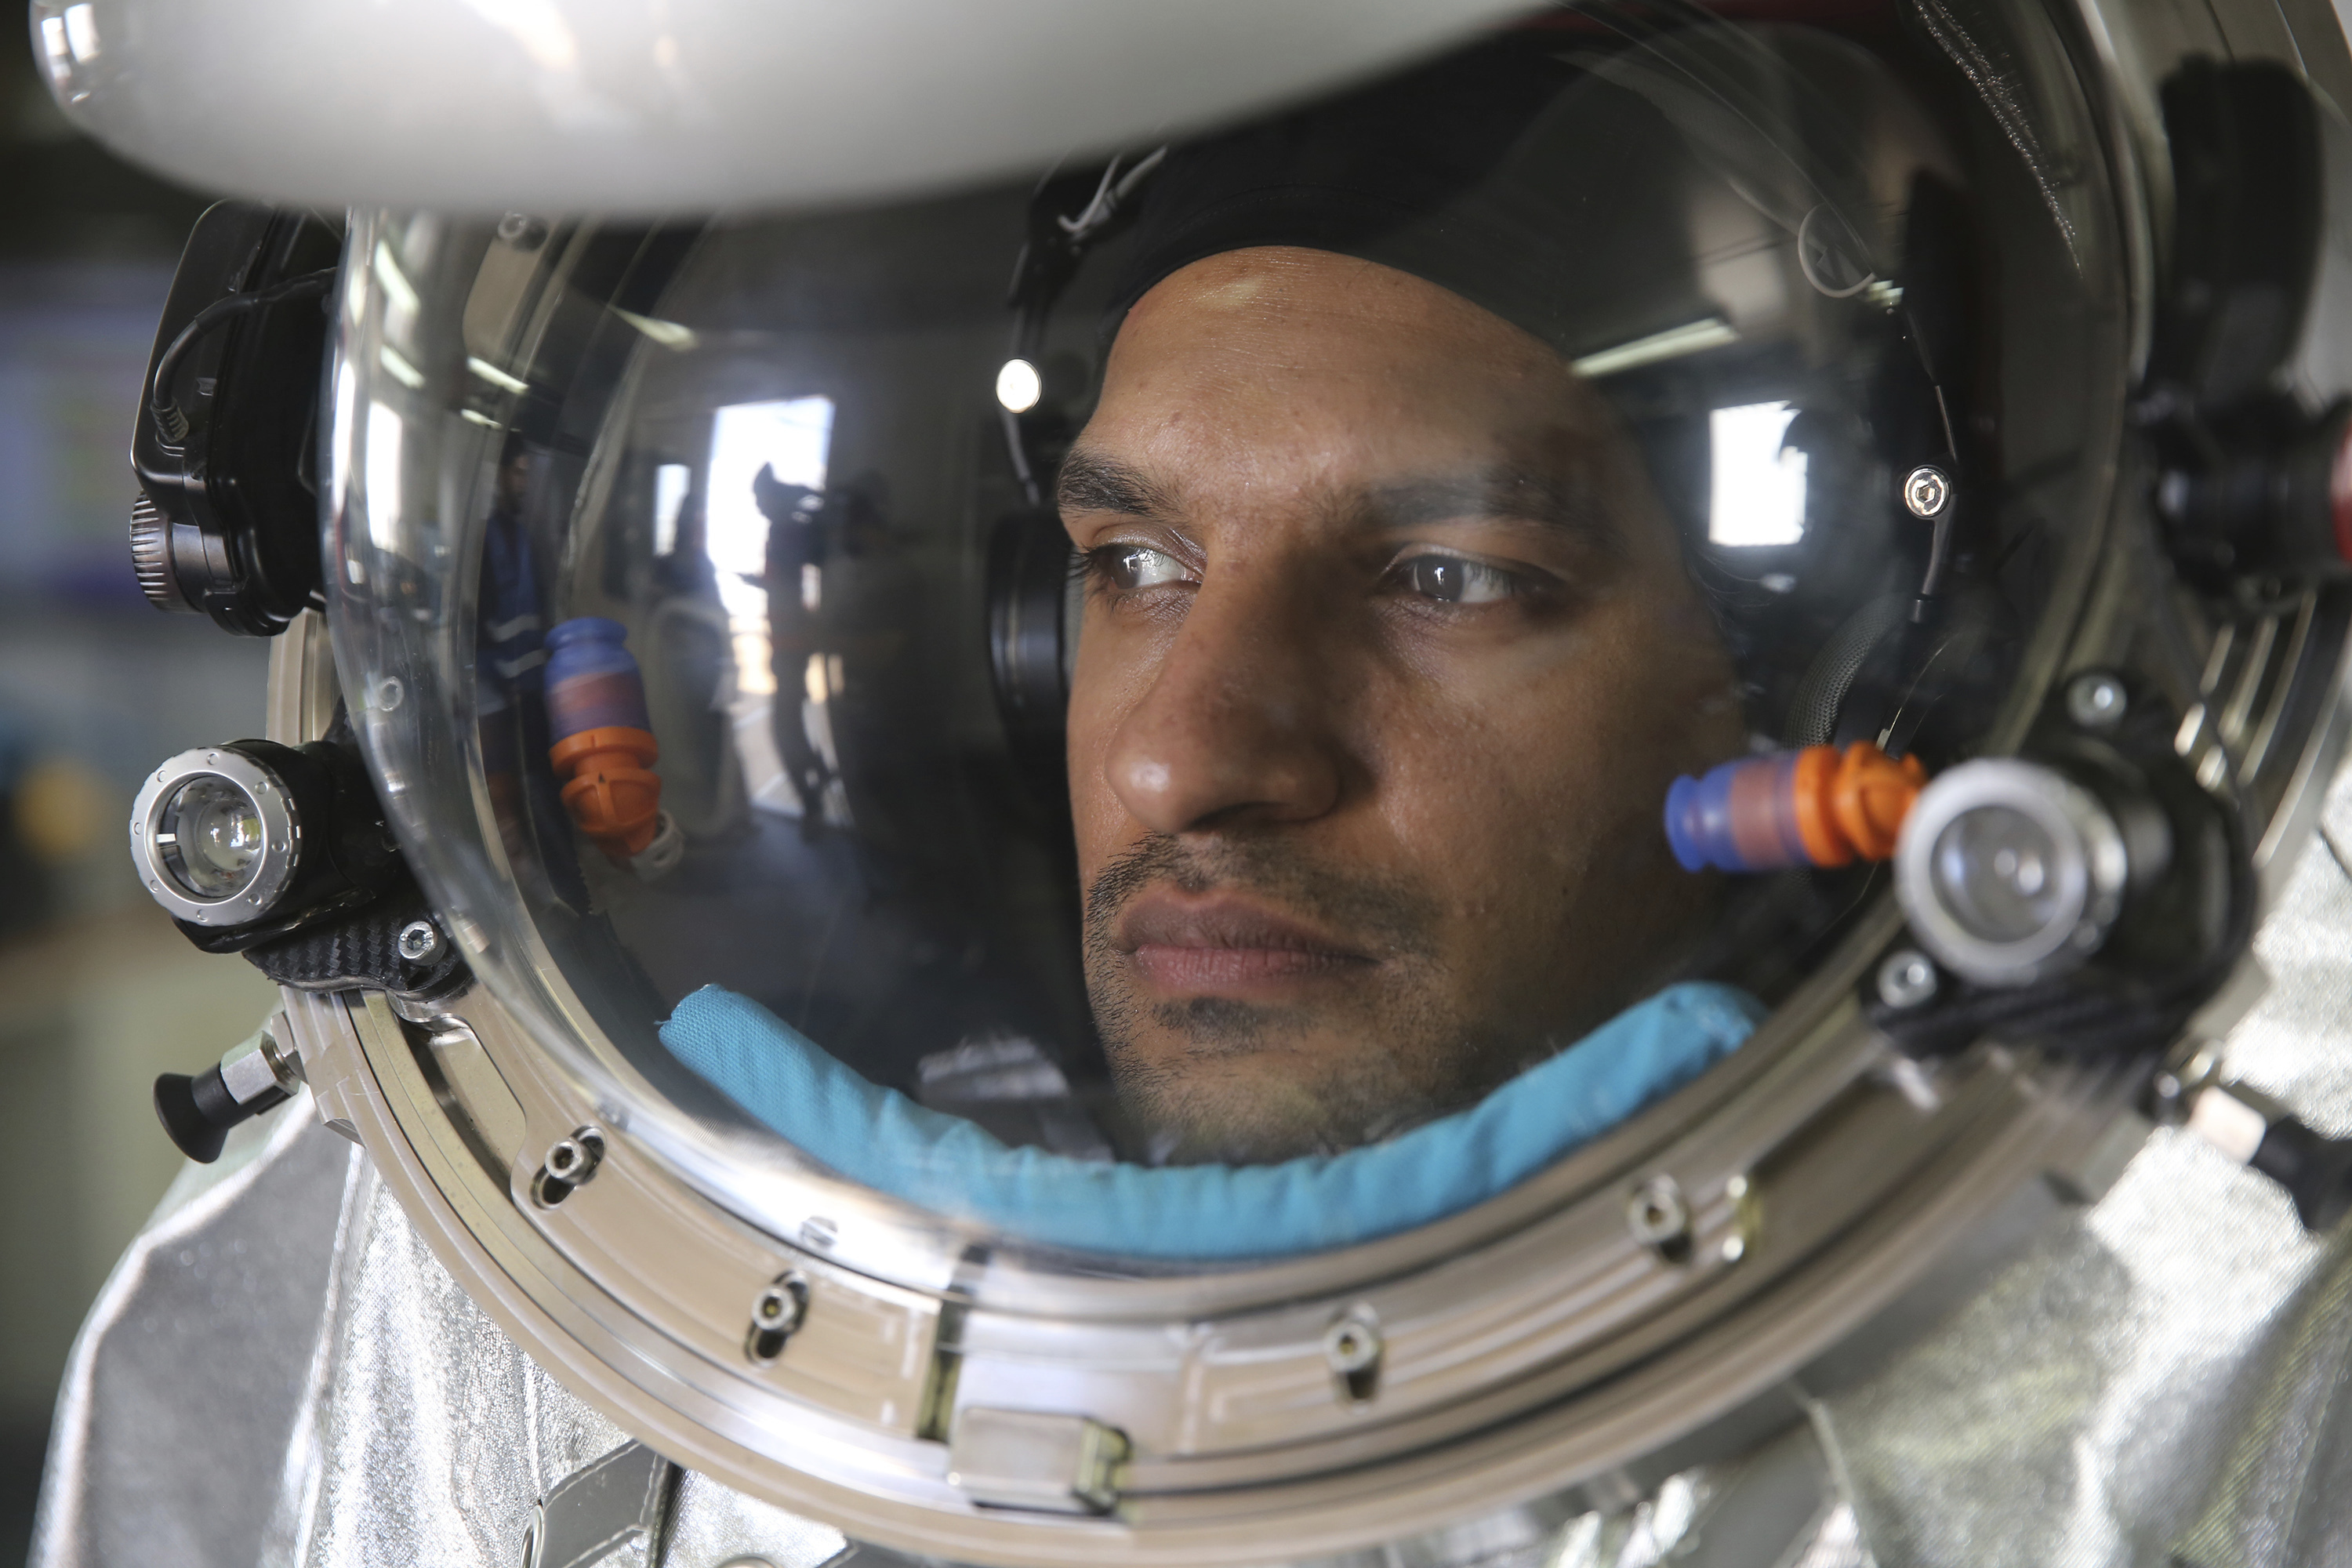 Analogue astronaut Kartik Kumar wearing an experimental space suit during a simulation of a future Mars mission in the Dhofar desert of southern Oman (Sam McNeil/AP)